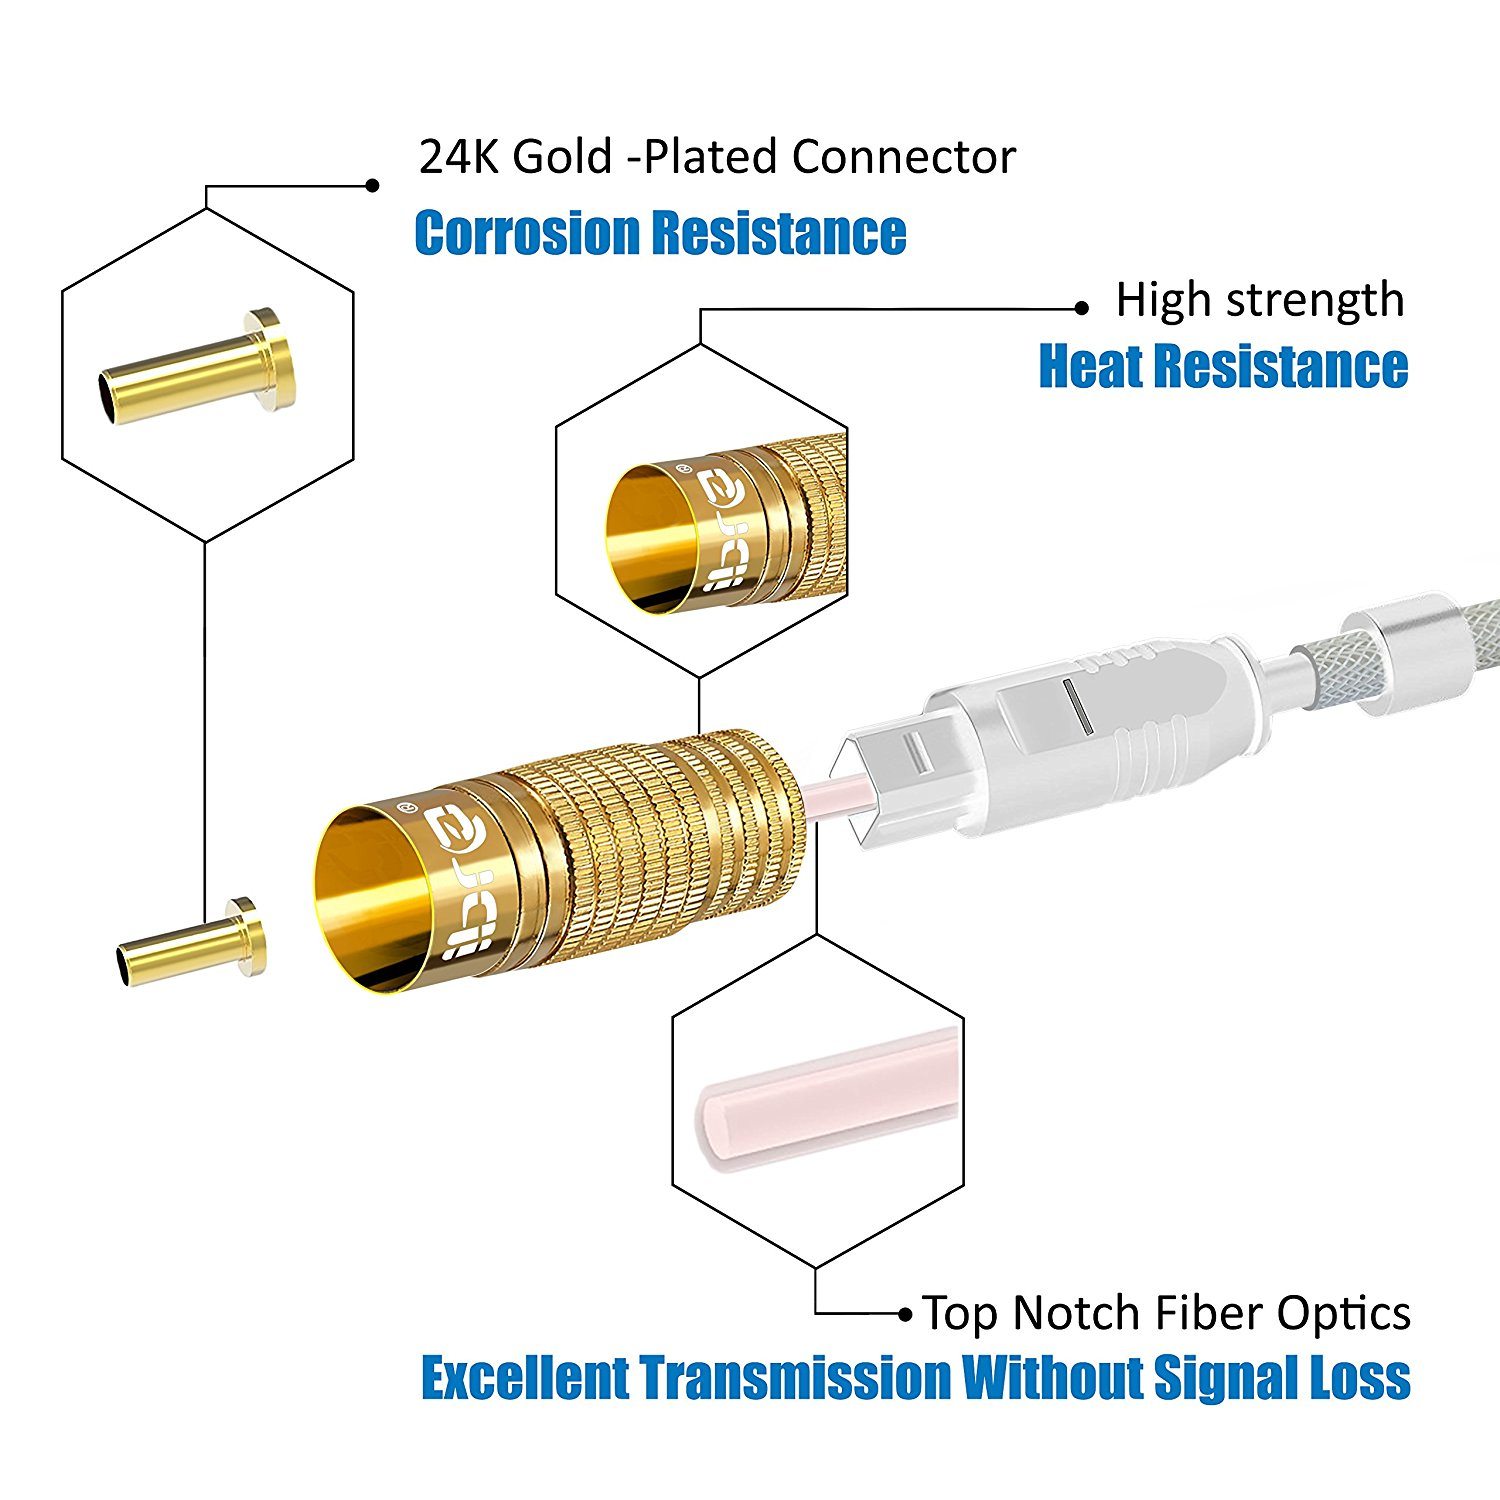 Optical Toslink Digital Audio Cable - 24K Gold Casing - Suitable for PS3,Sky,Sky HD,LCD,LED,Plasma, Blu Ray to Connect with Home Cinema Systems,AV Amps - 1M - IBRA PREMIUM WHITE